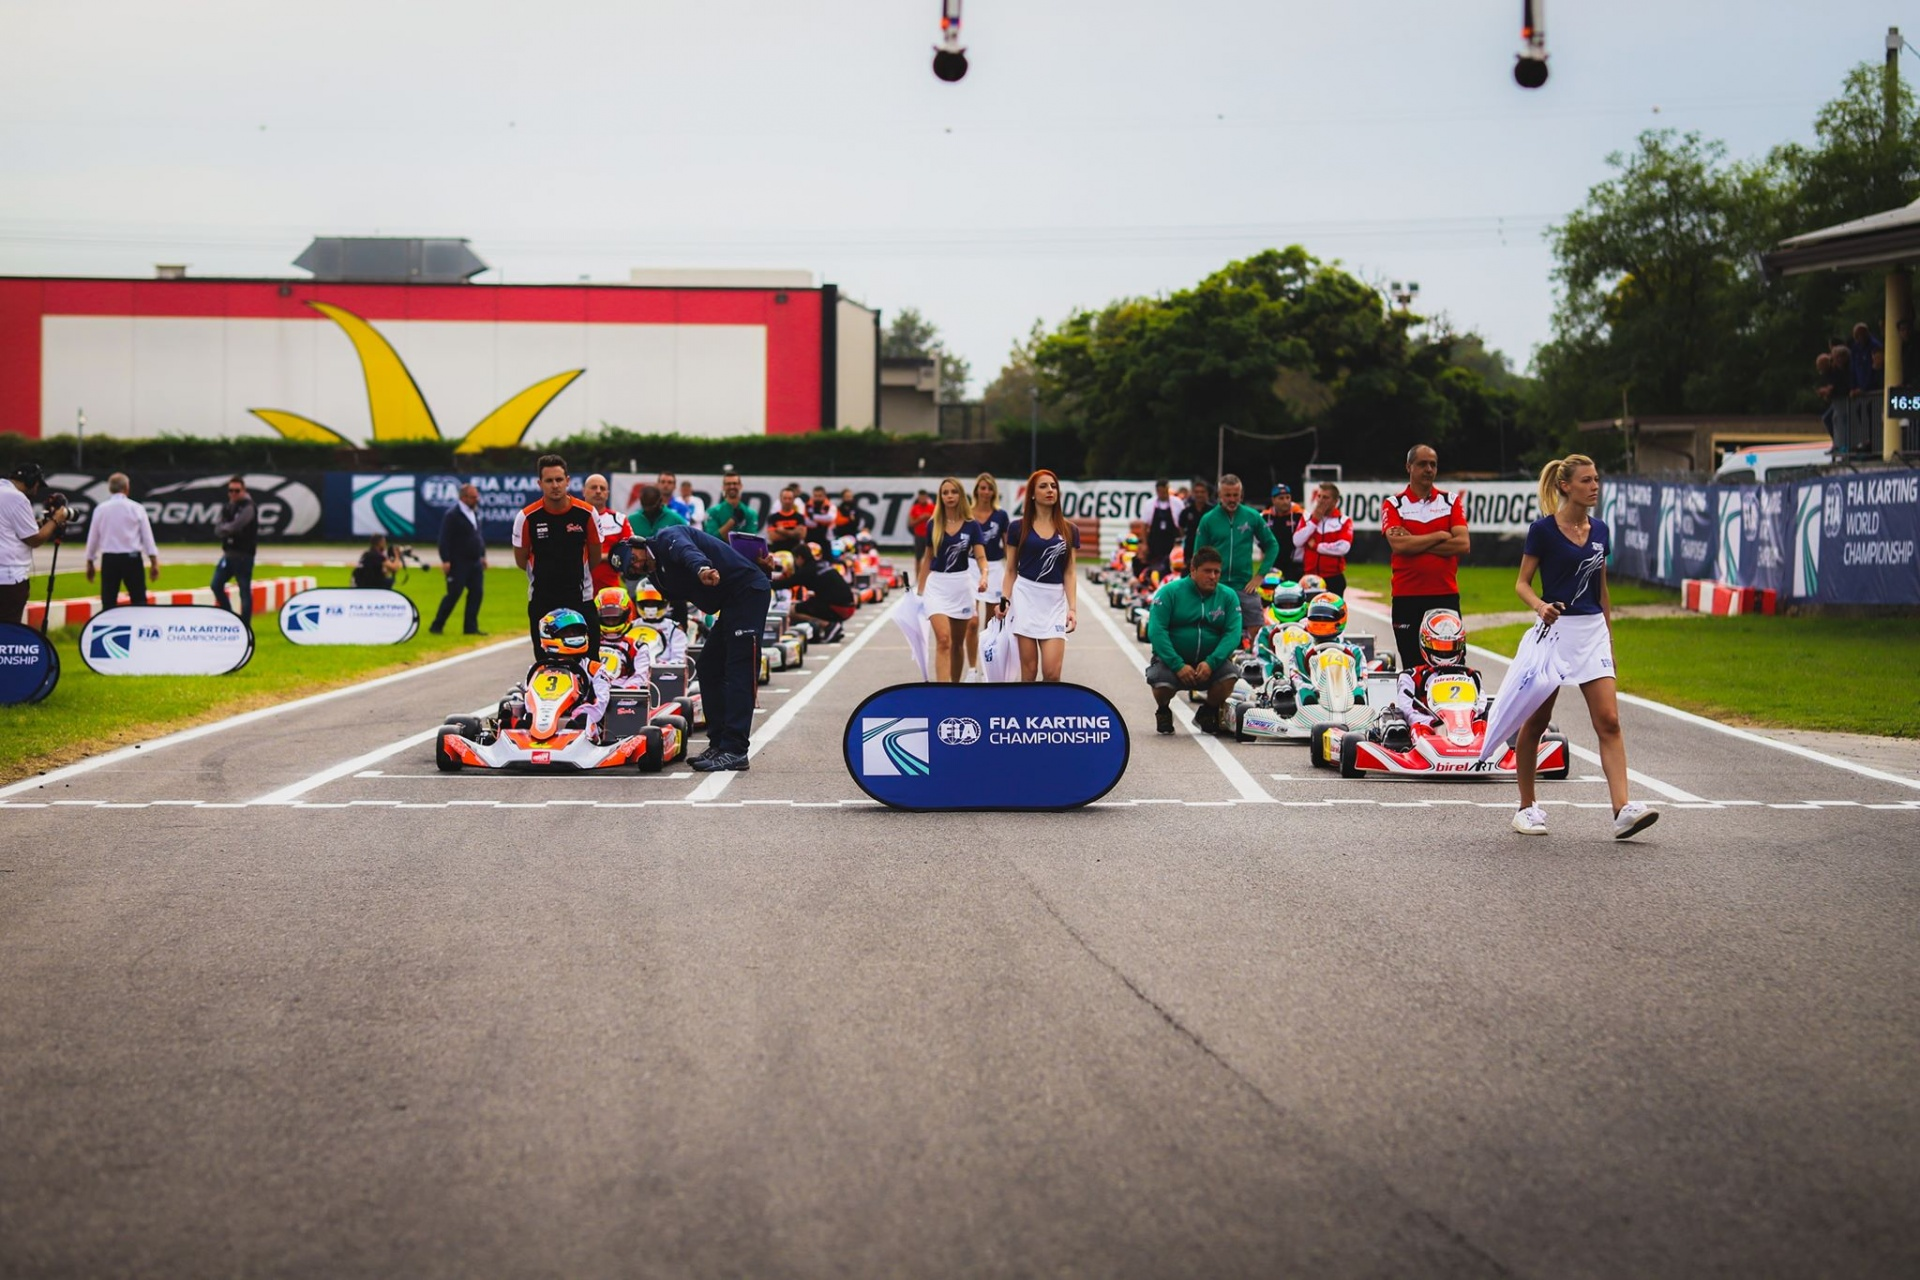 FIA Karting postpones the start of the European Championship, Zuera and Lonato rescheduled to this summer